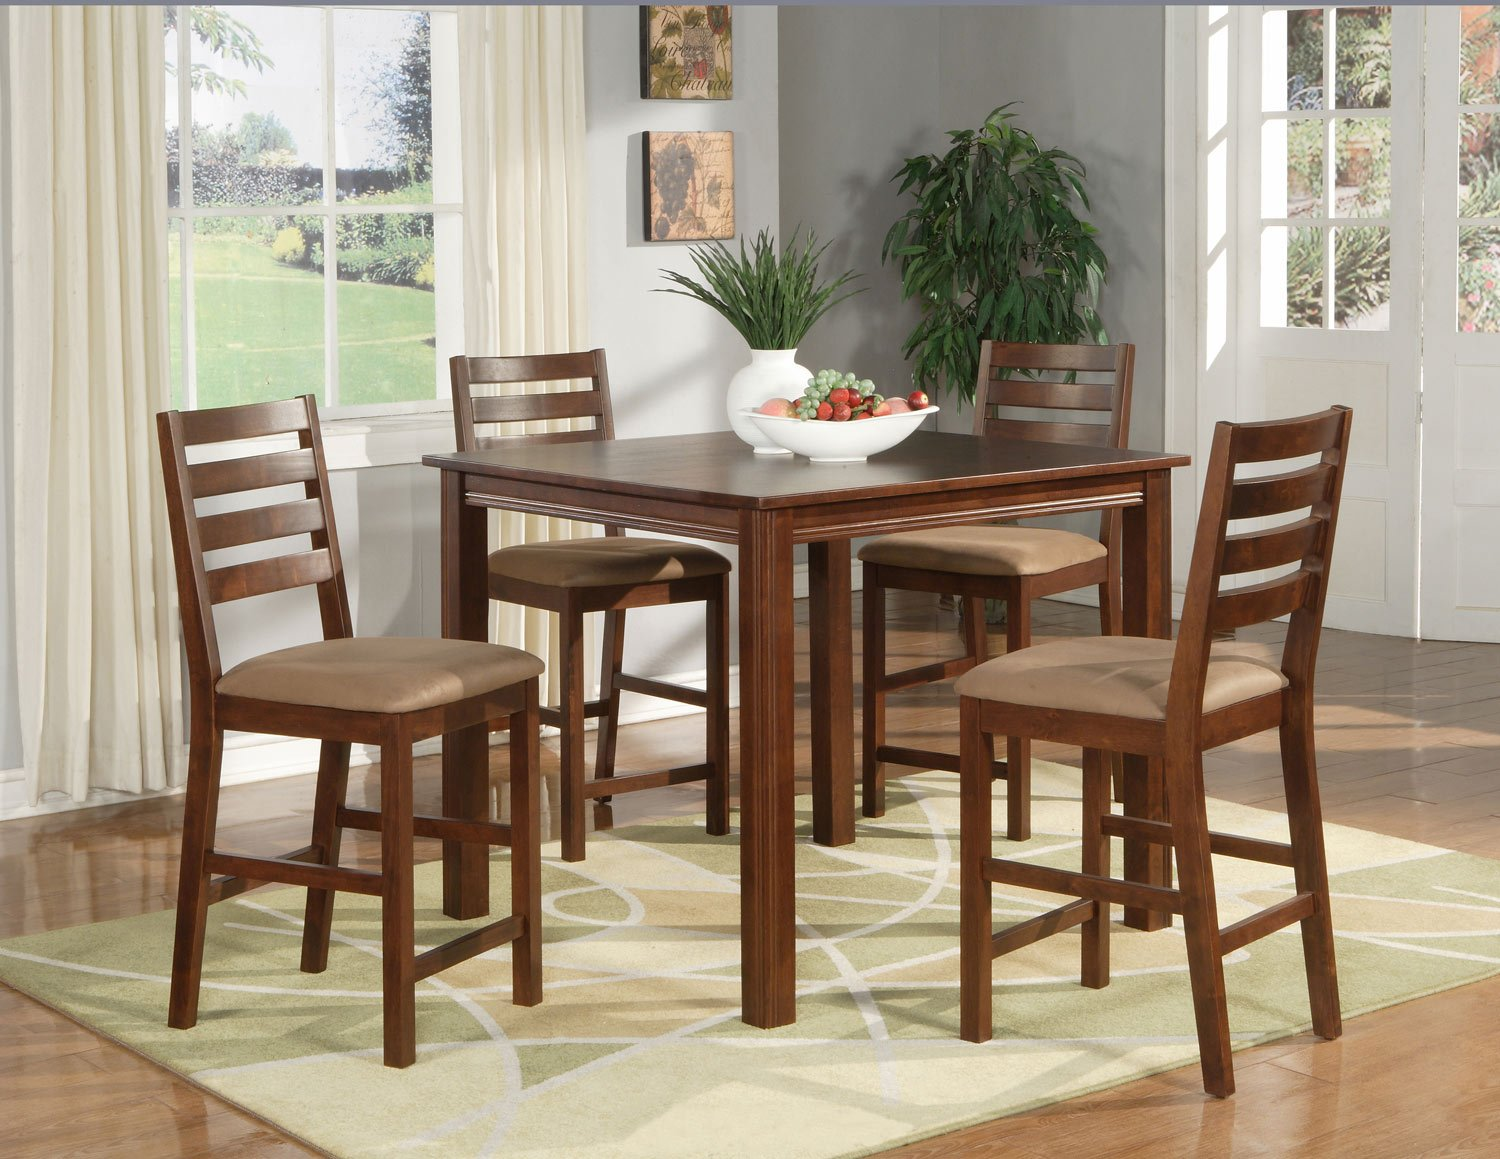 """Cafe 5-PC Square Gathering Pub Counter Height Table Set-Size: 42""""x42"""" in Espresso.  SKU:CF5-ESP"""